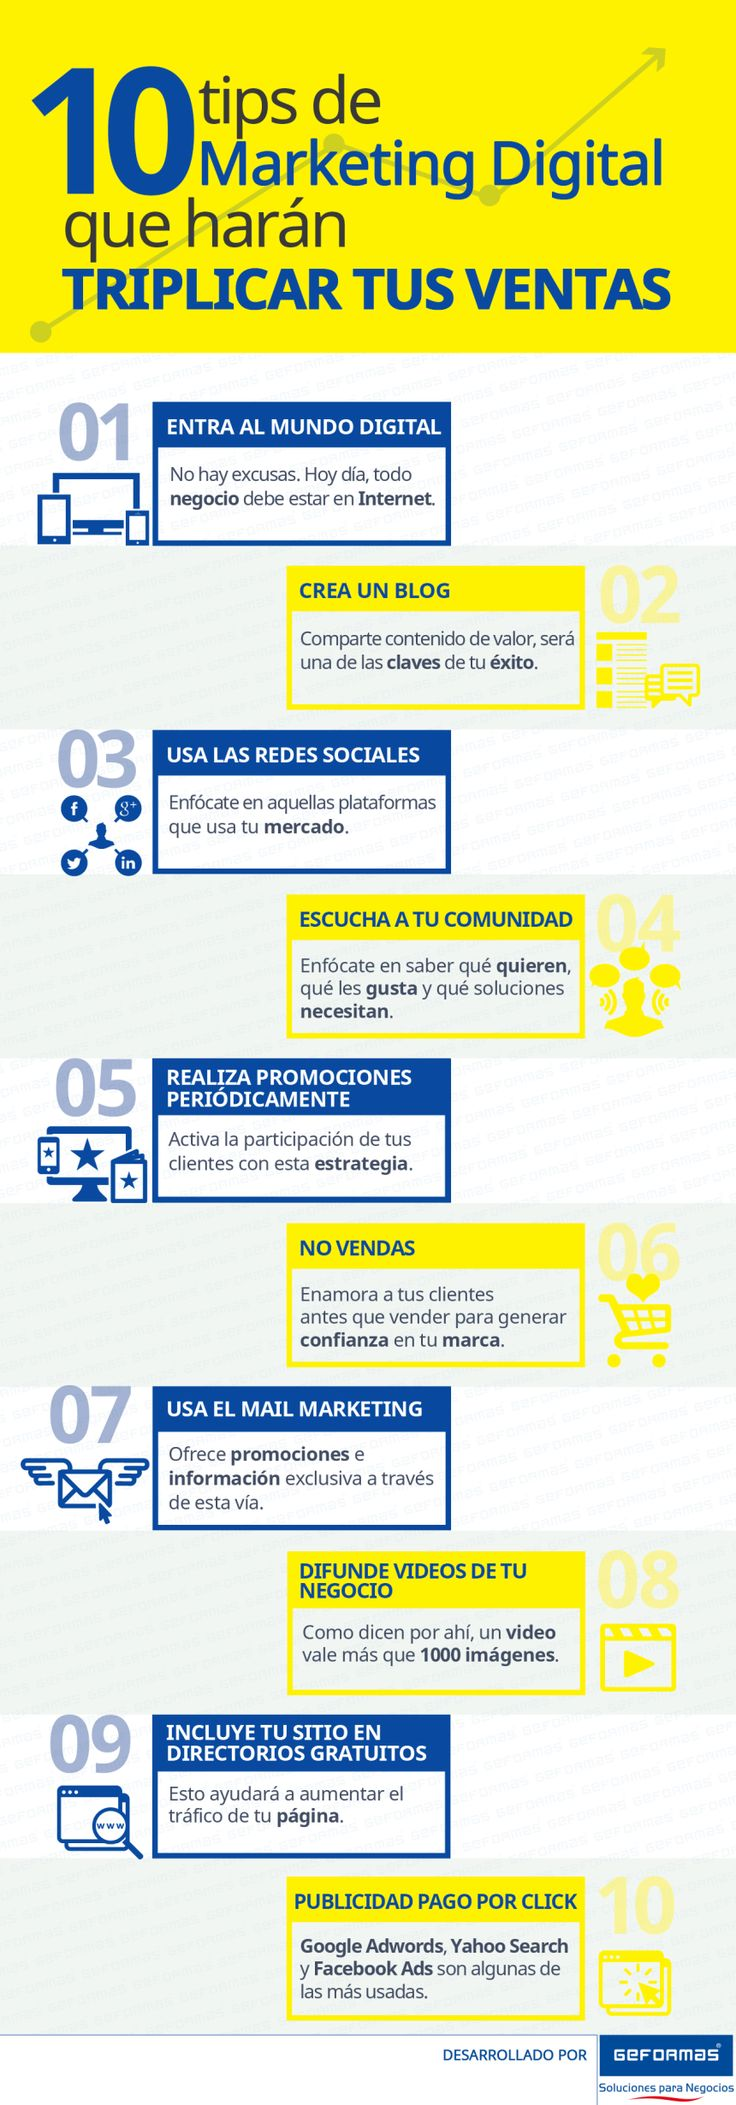 10 consejos de marketing digital para triplicar tus ventas #infografia #marketing